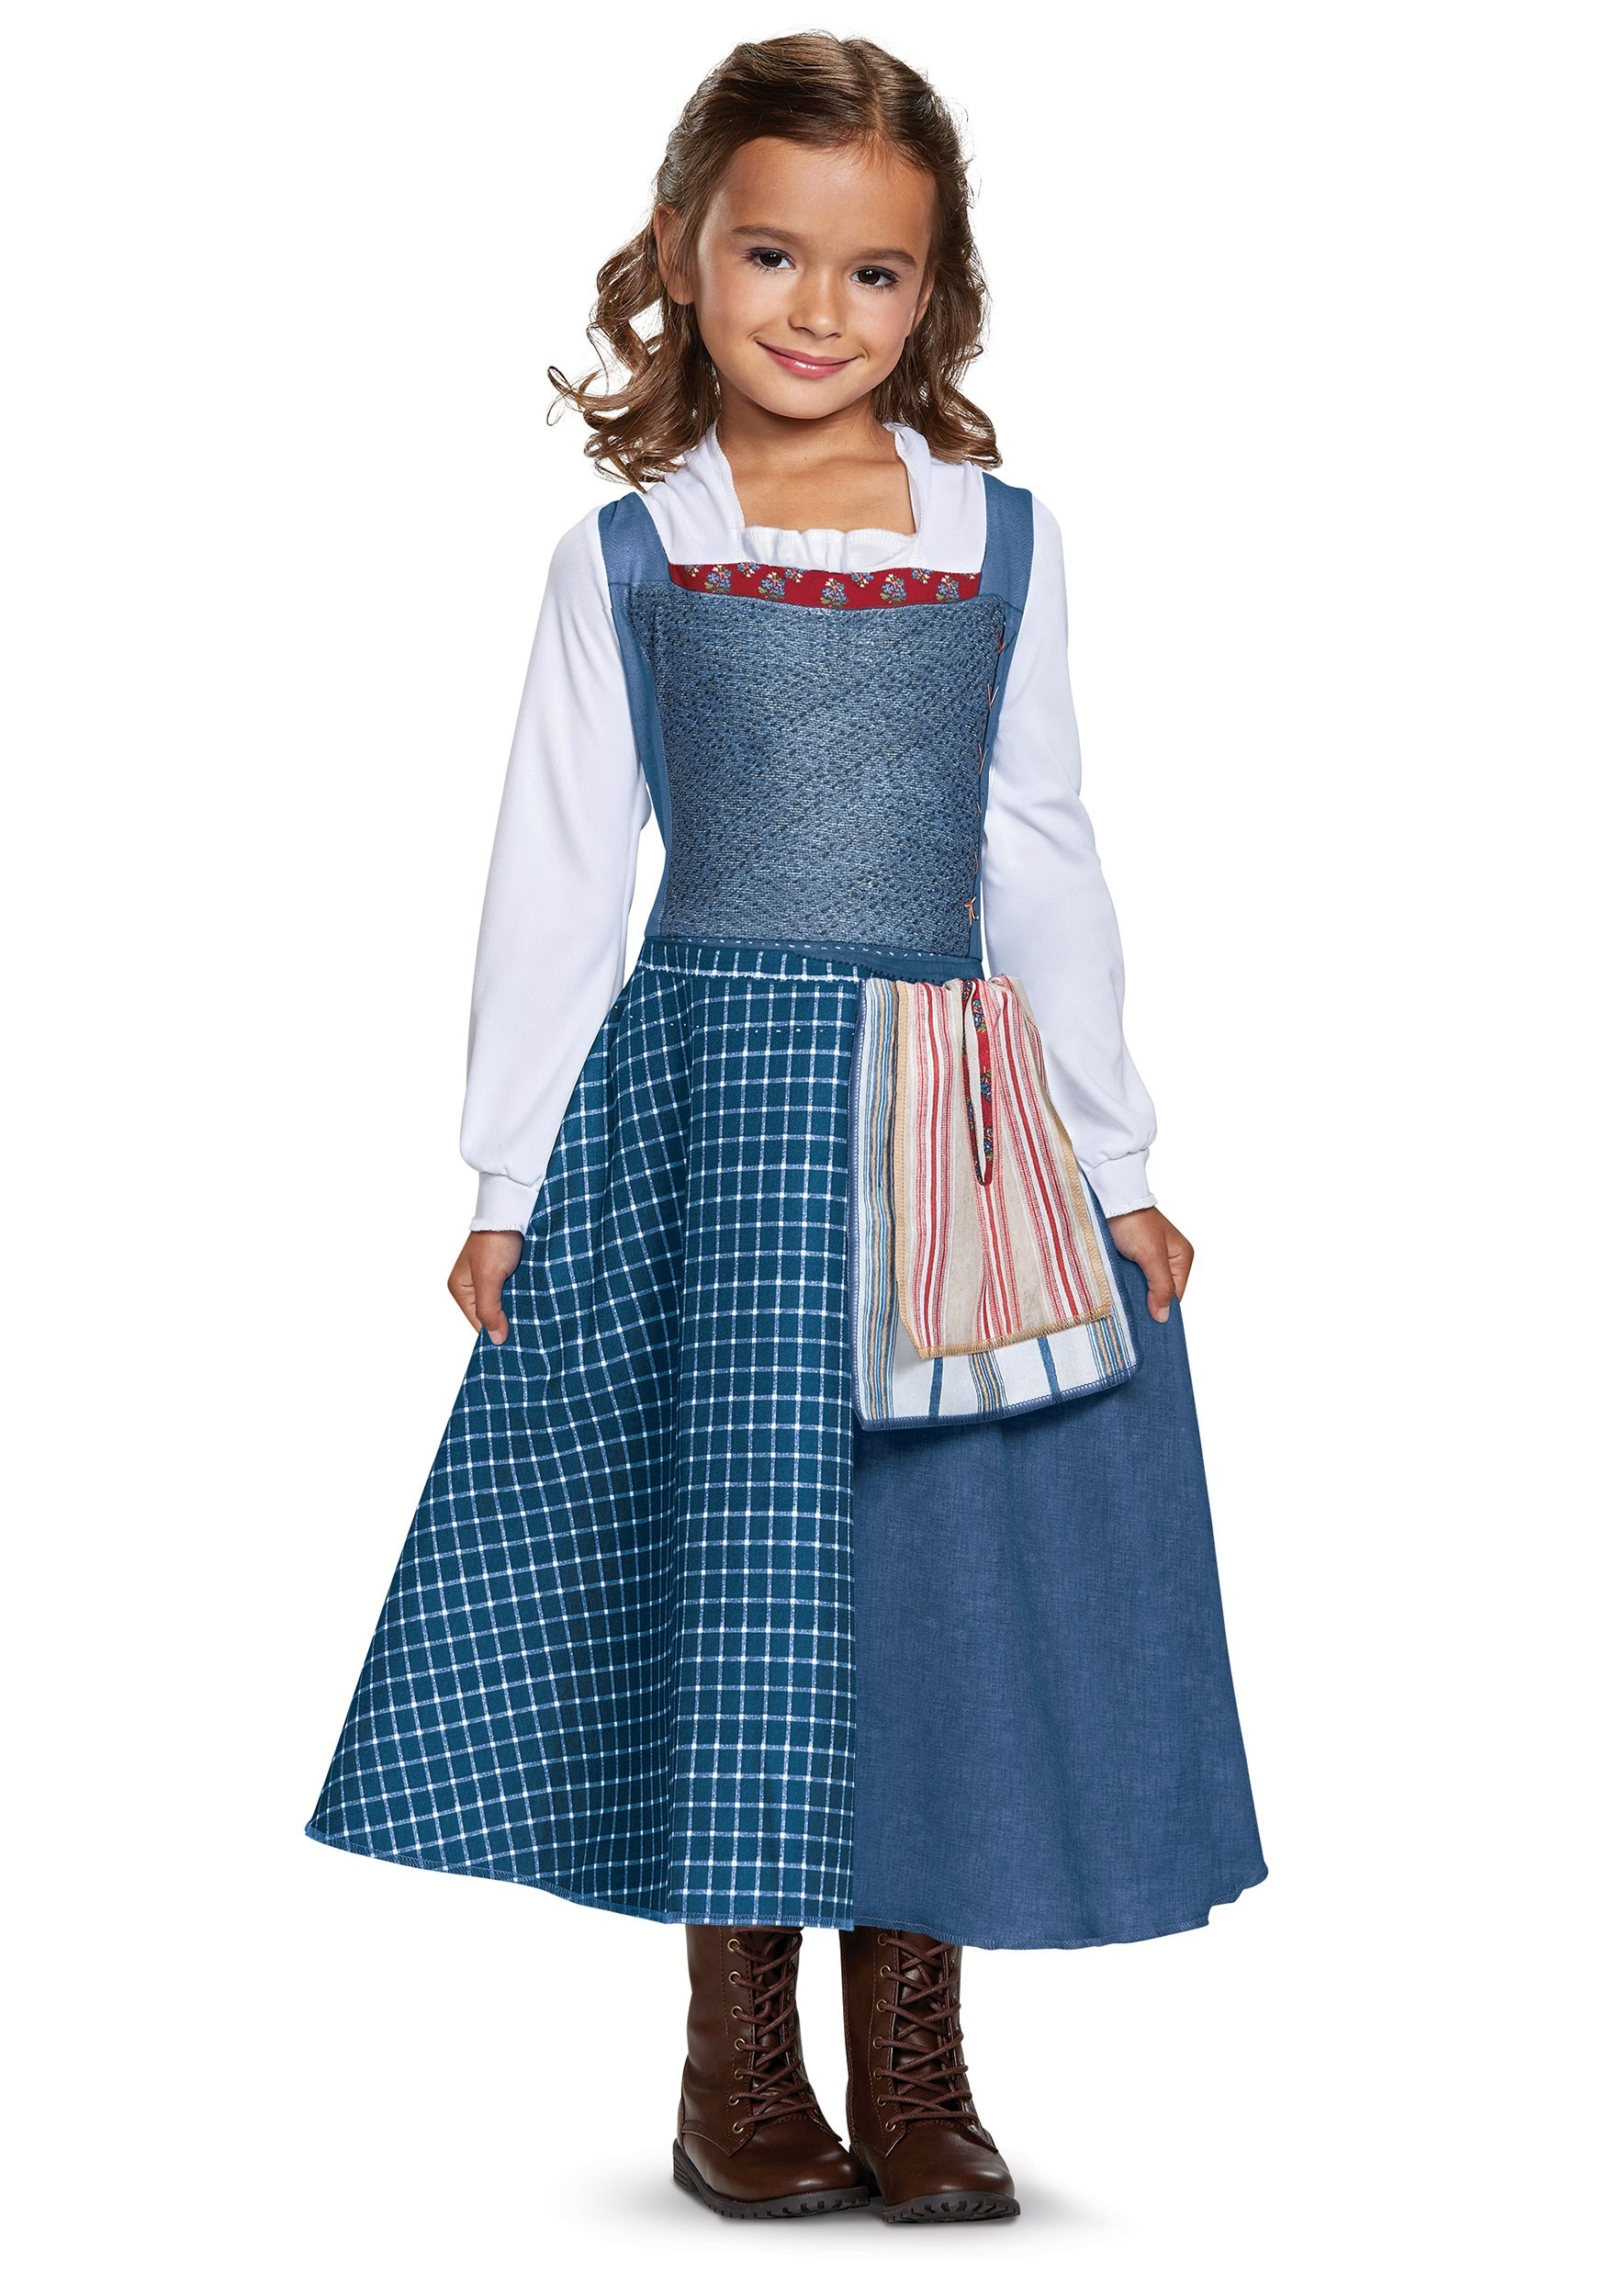 Beauty and the Beast Costumes - HalloweenCostumes.com